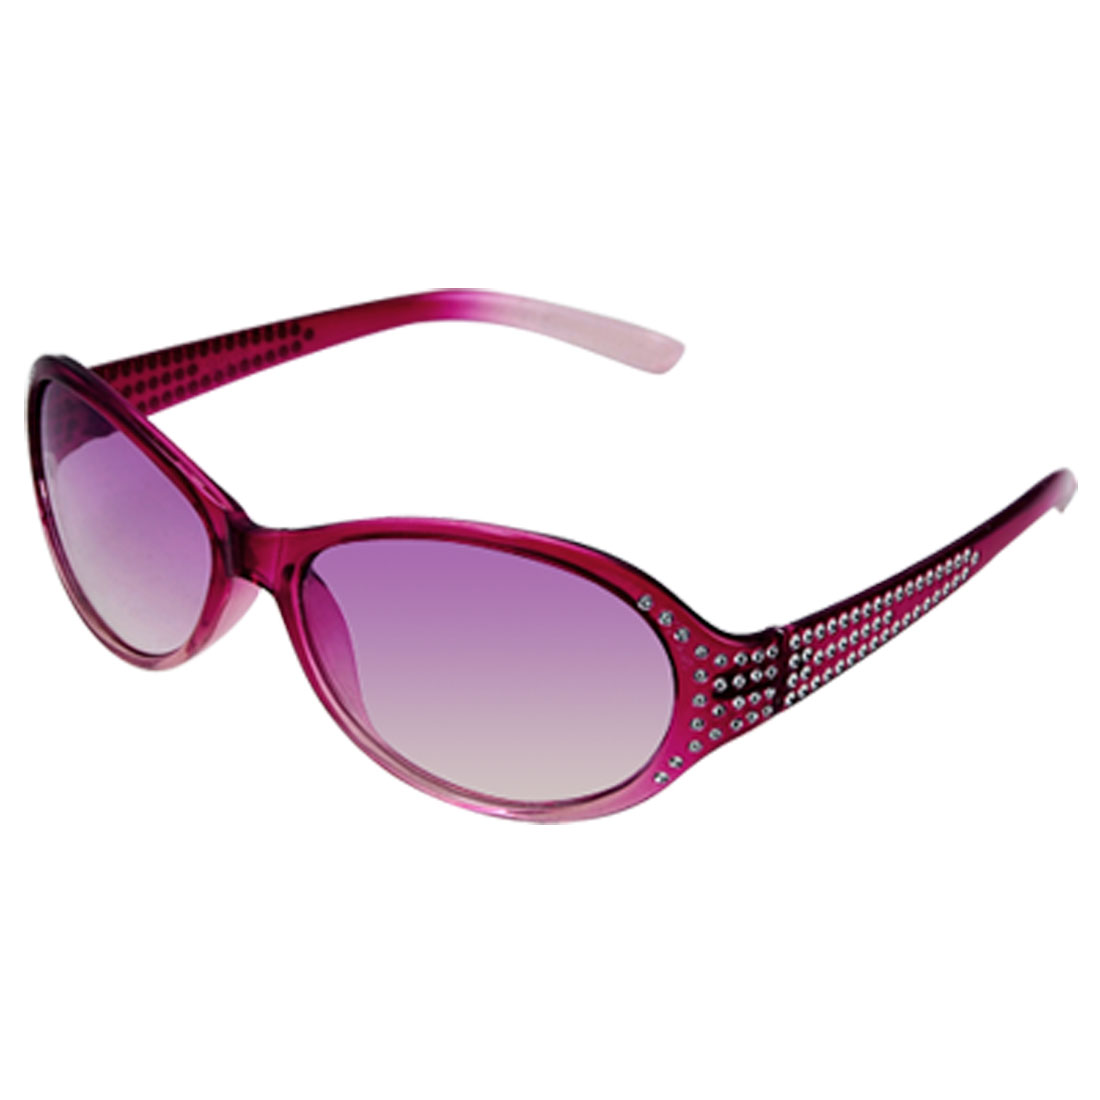 Rhinestone Full Frame Plastic Arms Sunglasses for Child